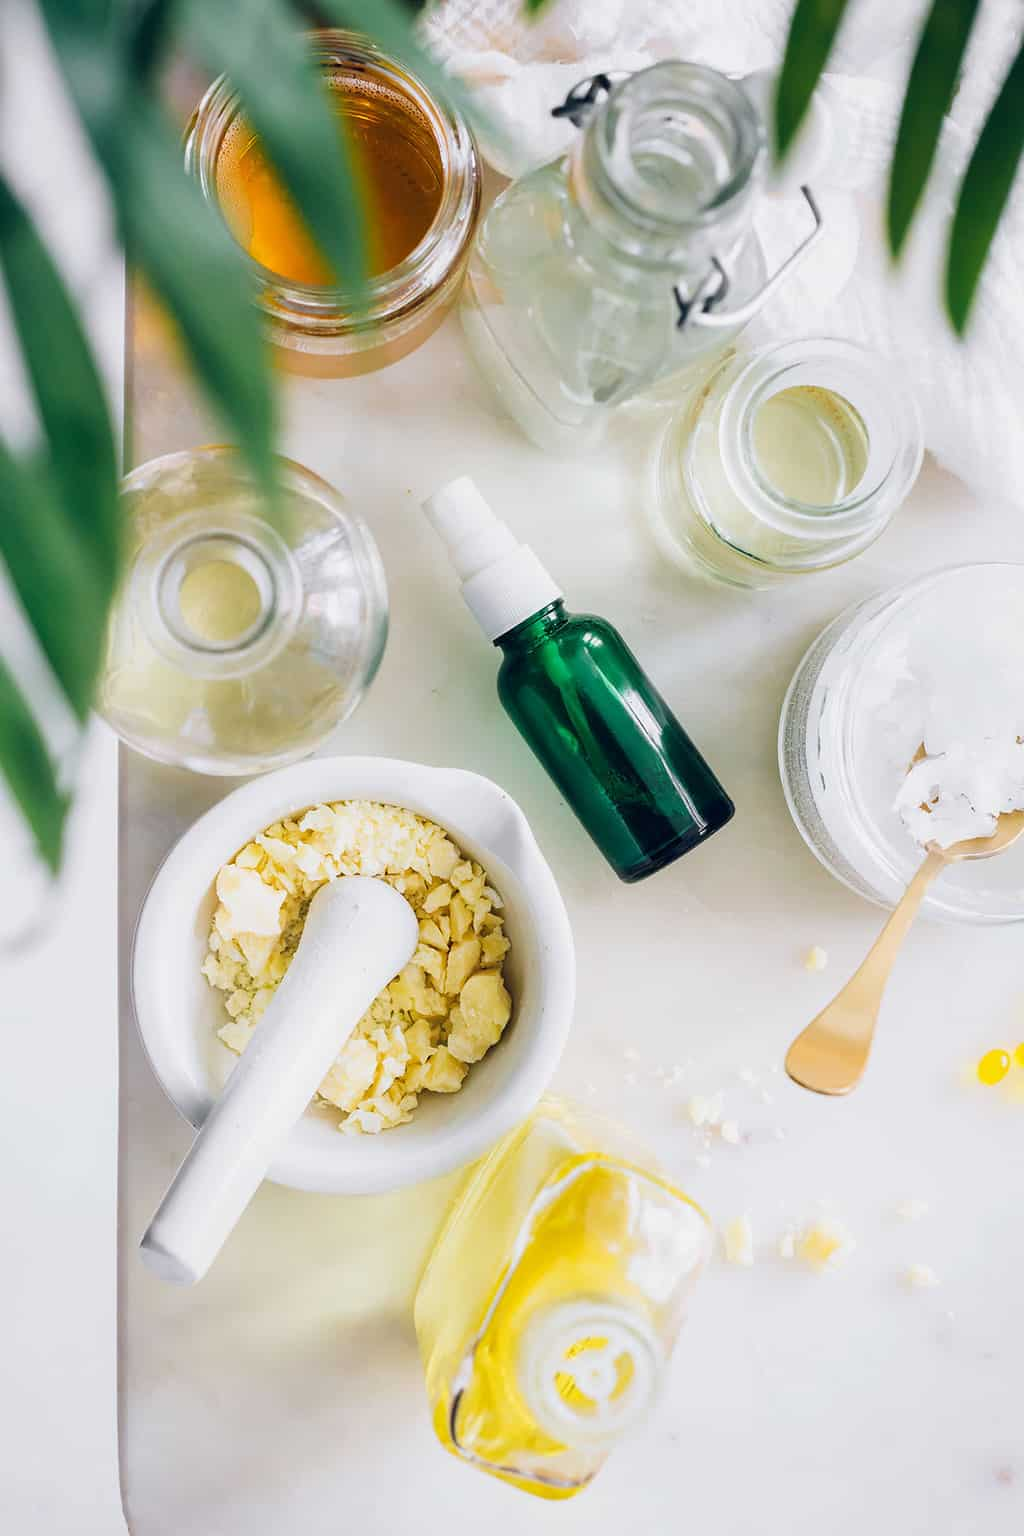 10 Natural Moisturizers for Your Face You Can Find in the Kitchen